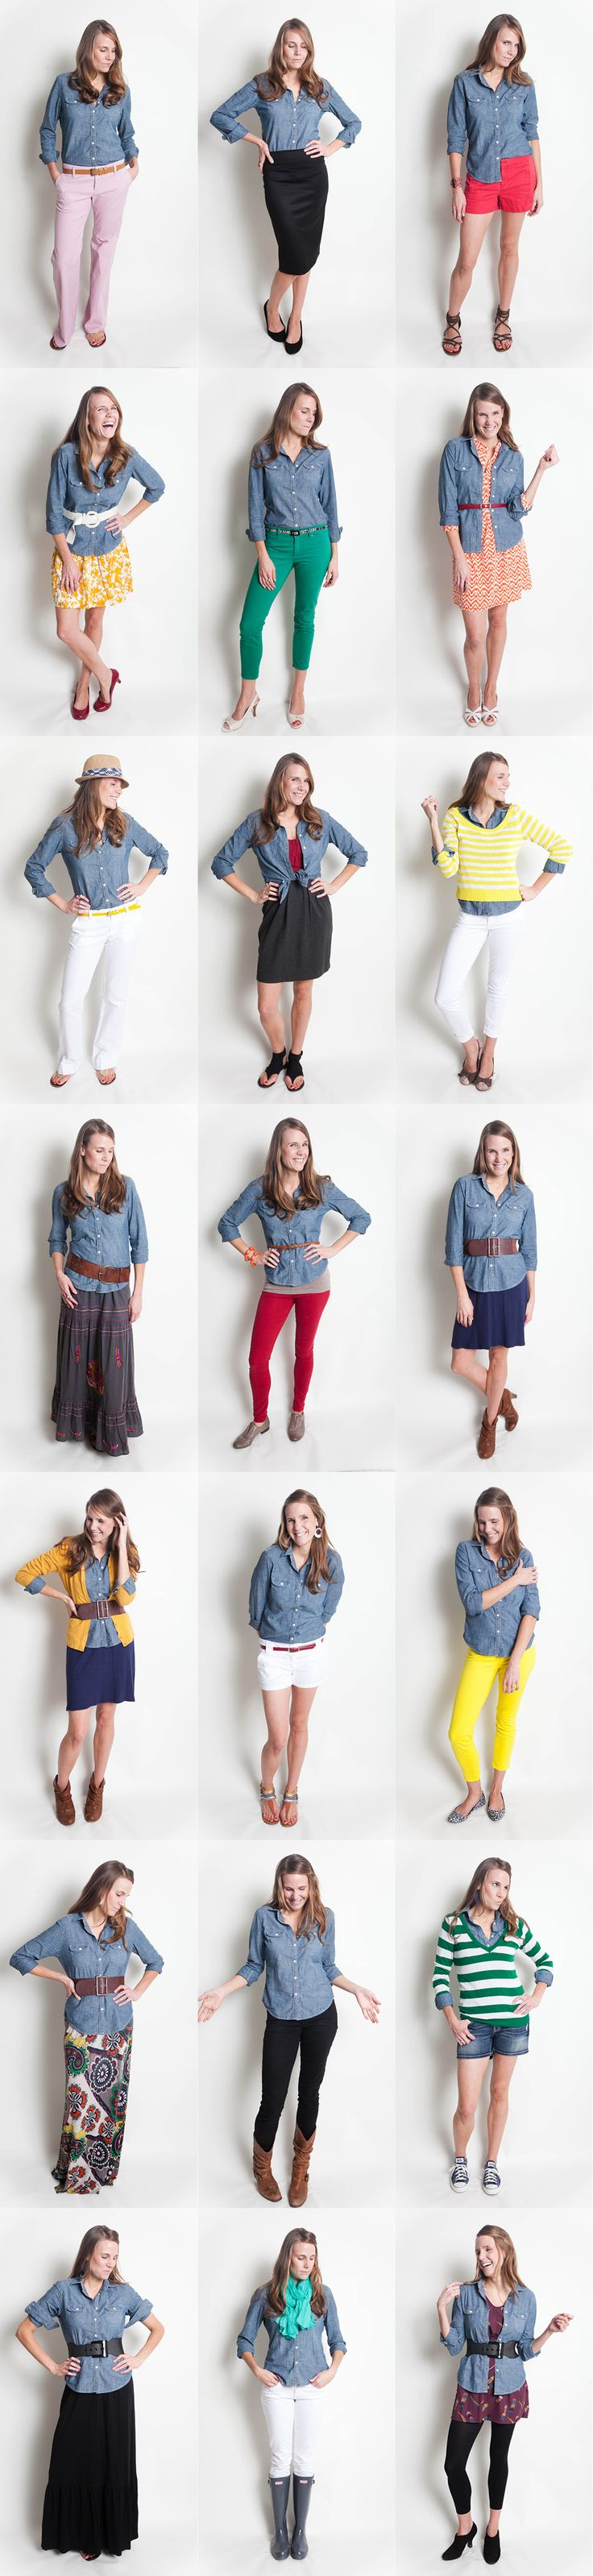 I had NO idea you could do so many things with a Chambray Shirt. Lot's of fashion ideas for all of you ladies out there!